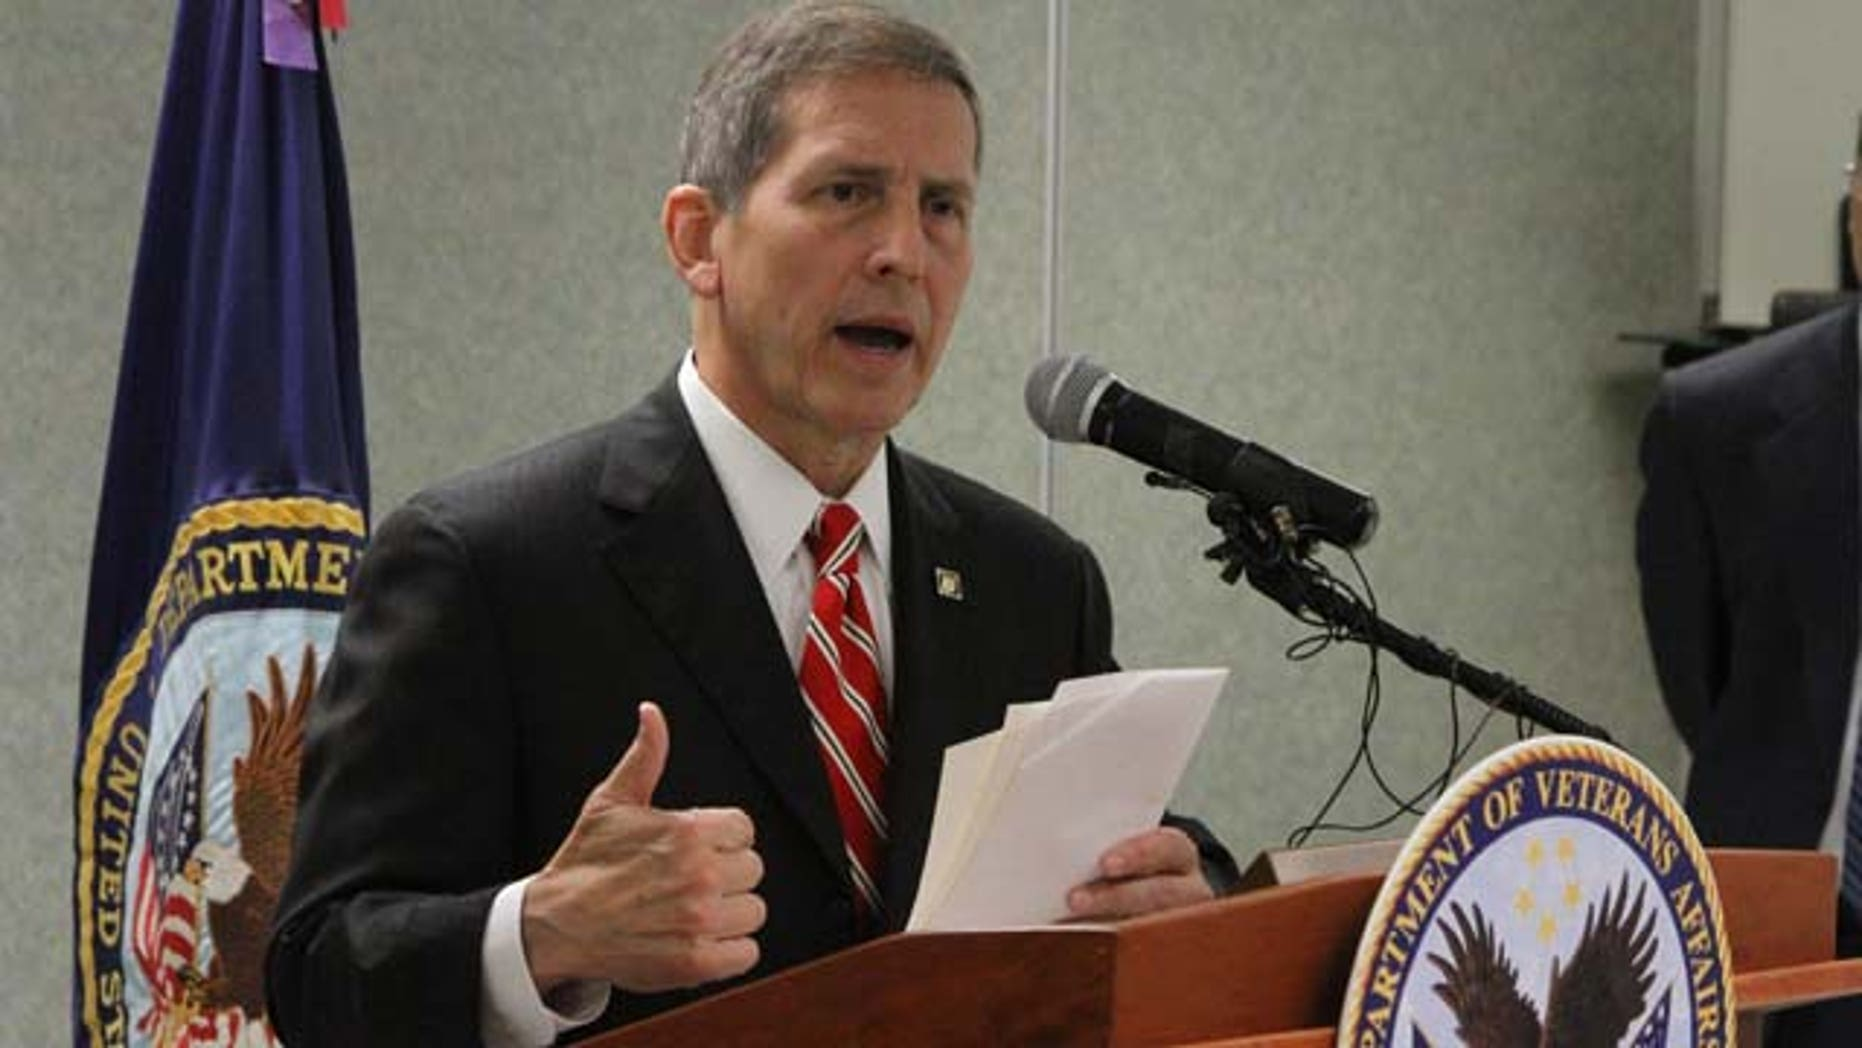 July 18, 2014: Veterans Affairs Acting Secretary Sloan Gibson speaks during a press conference at the local VA facility in El Paso, Texas. (AP Photo/Juan Carlos Llorca)